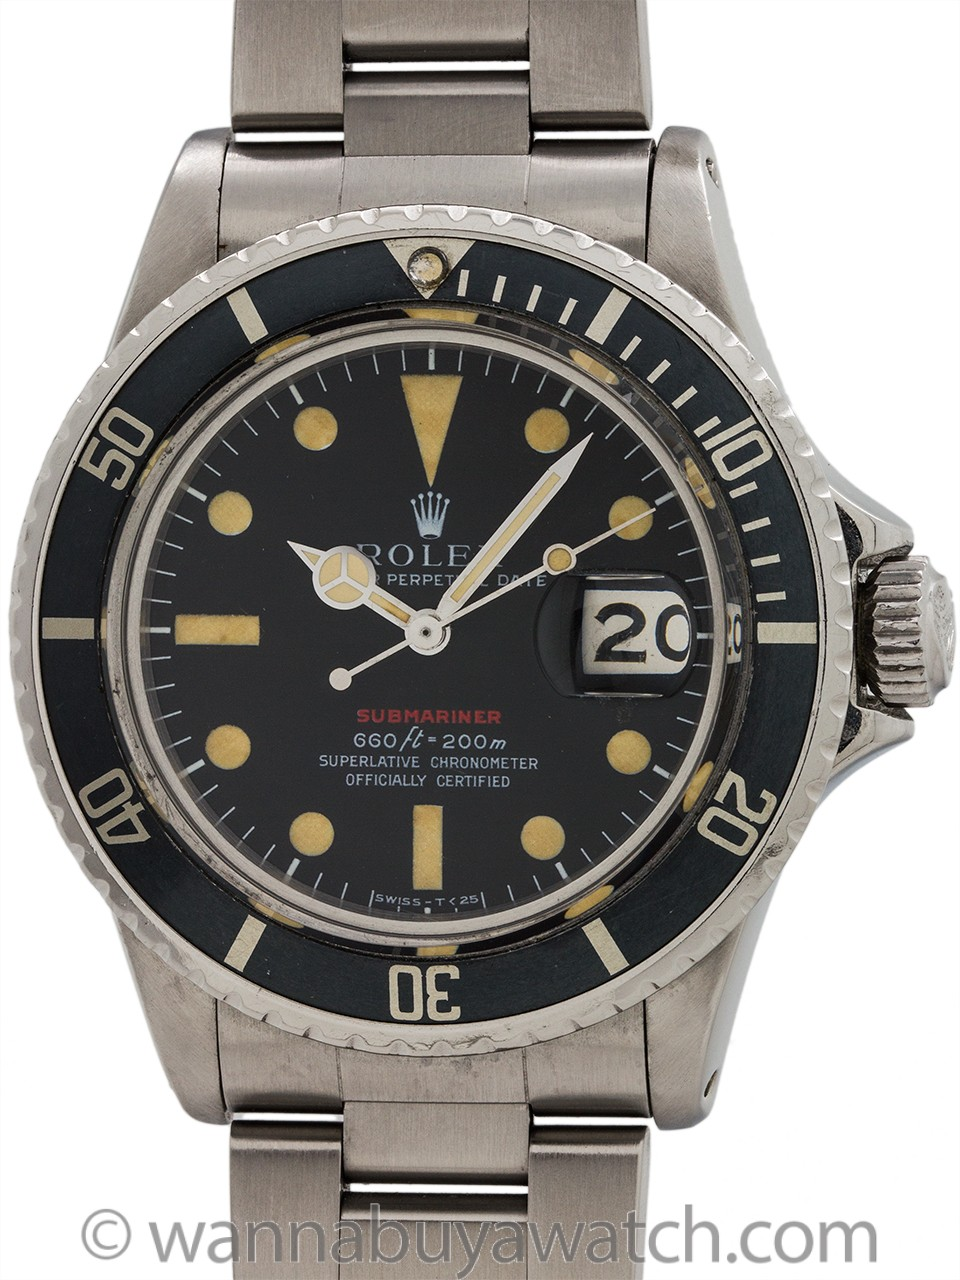 Rolex Red Submariner ref# 1680 circa 1974